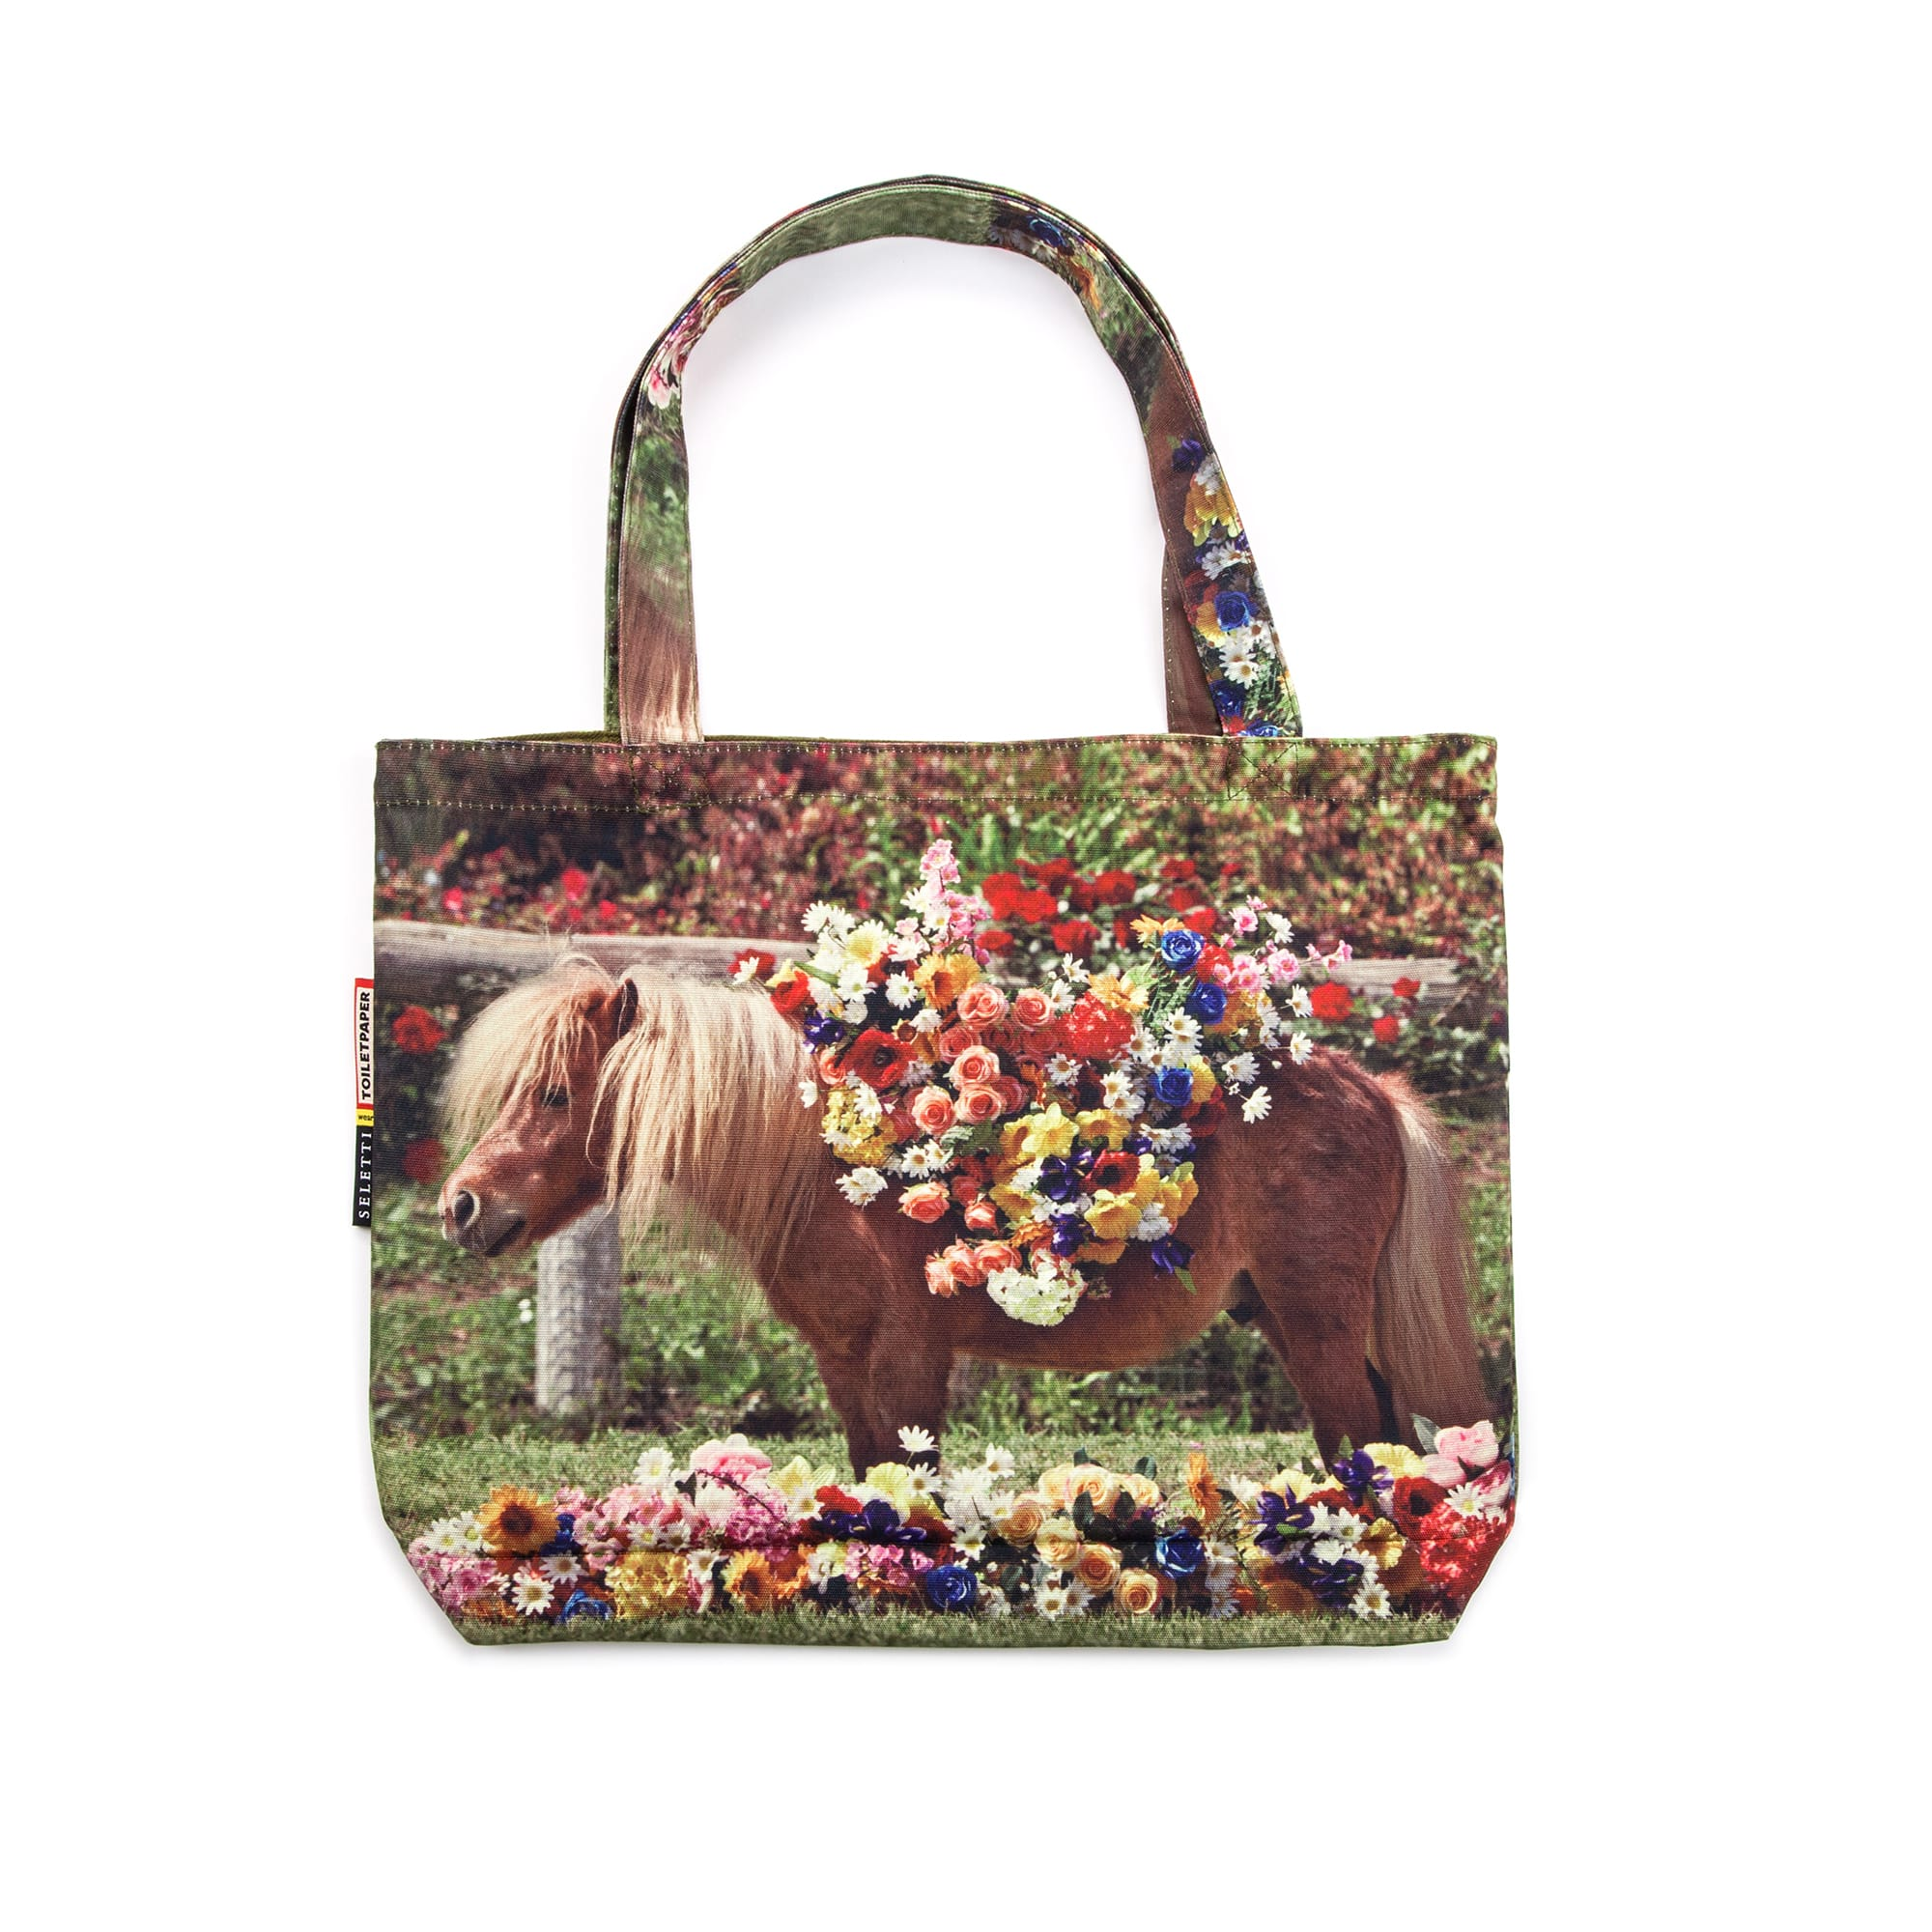 The fun and quirky Pony tote by Seletti wears Toiletpaper